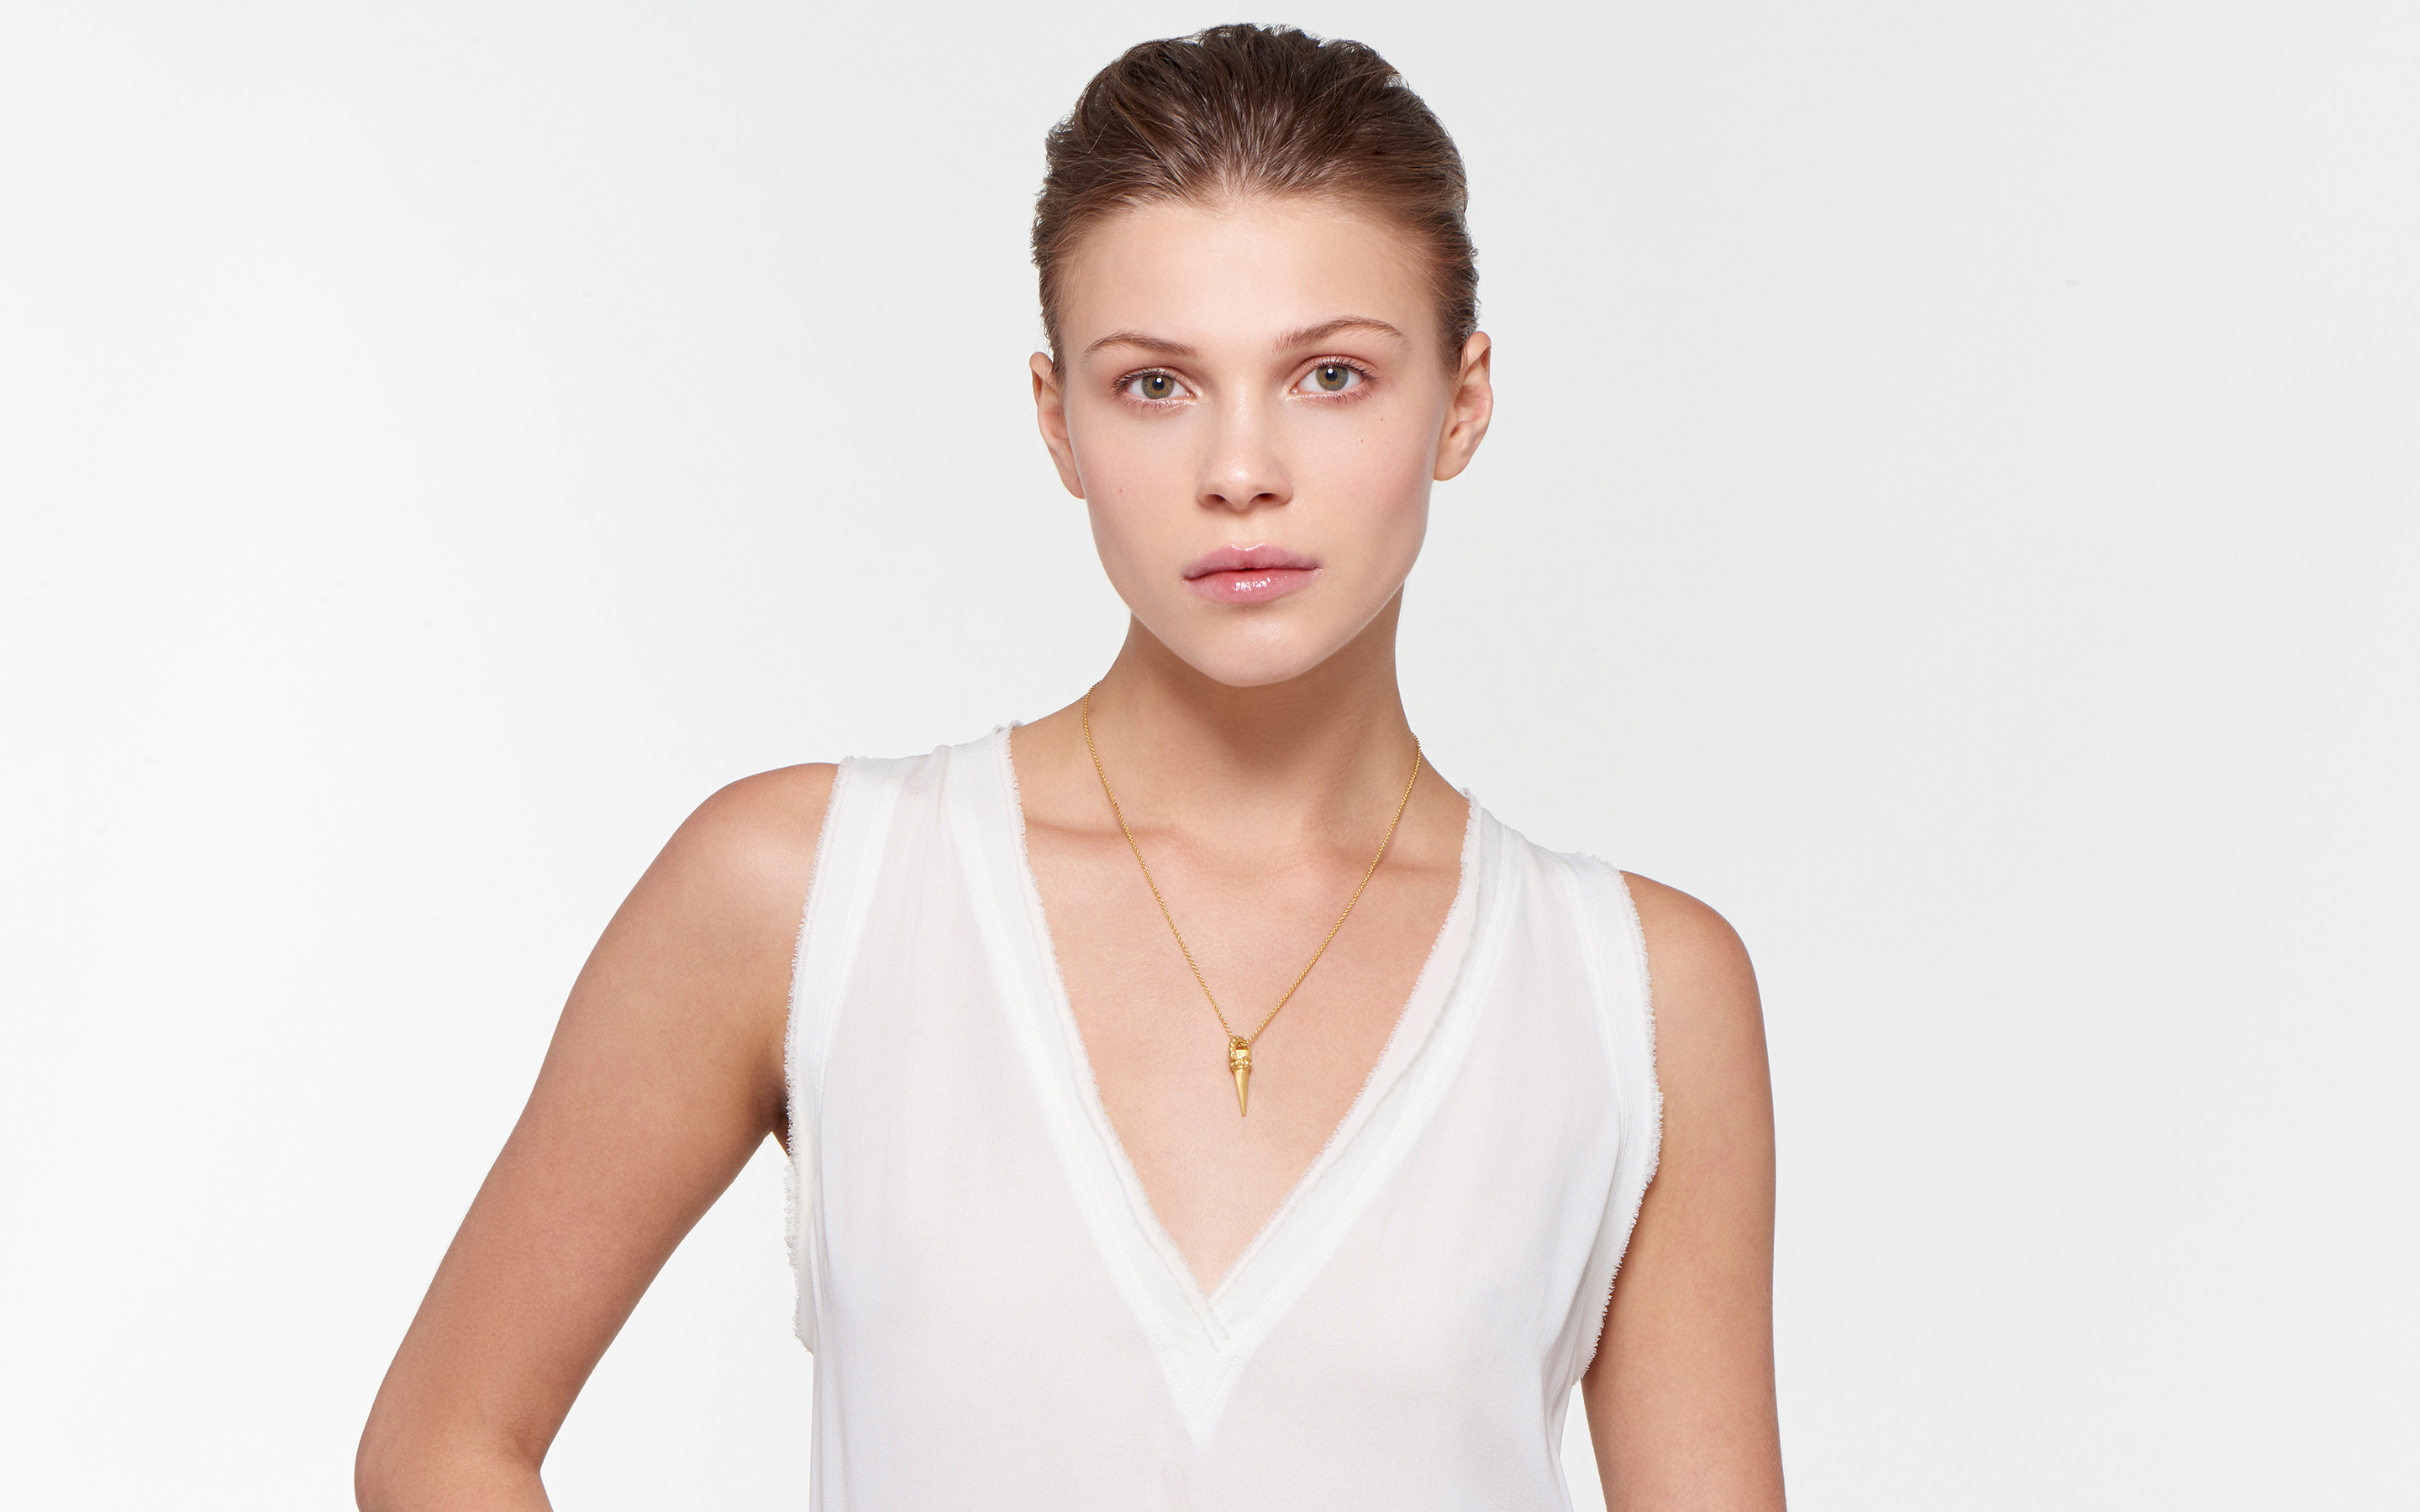 lithe model exhibiting 22 karat gold necklace with small cone charm in satin finish